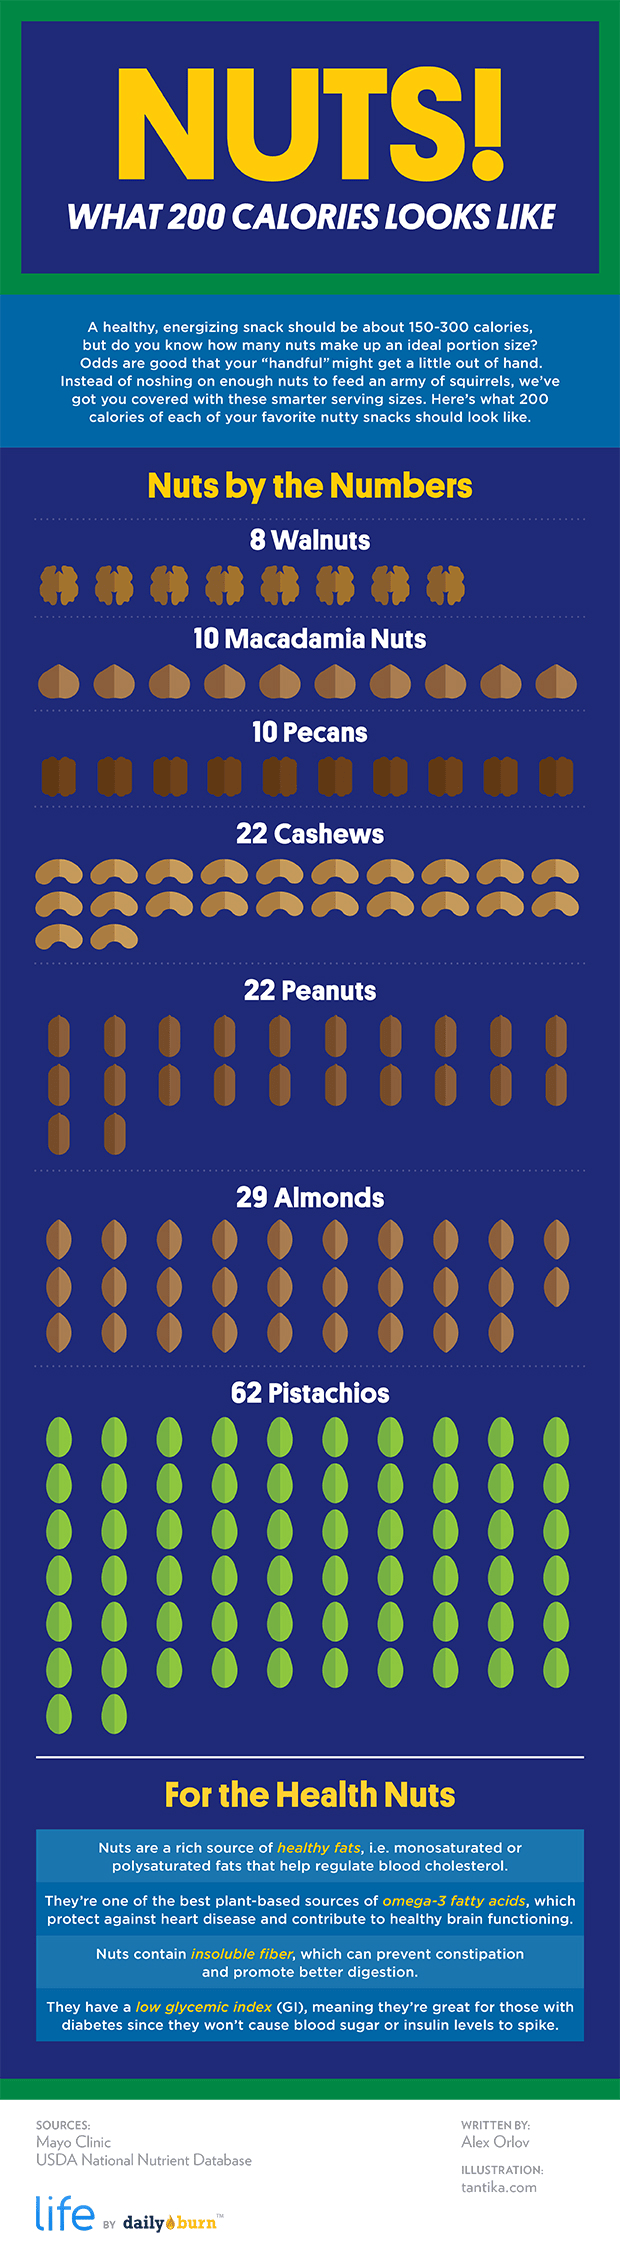 These 24 Diagrams Make Healthy Eating Super Easy